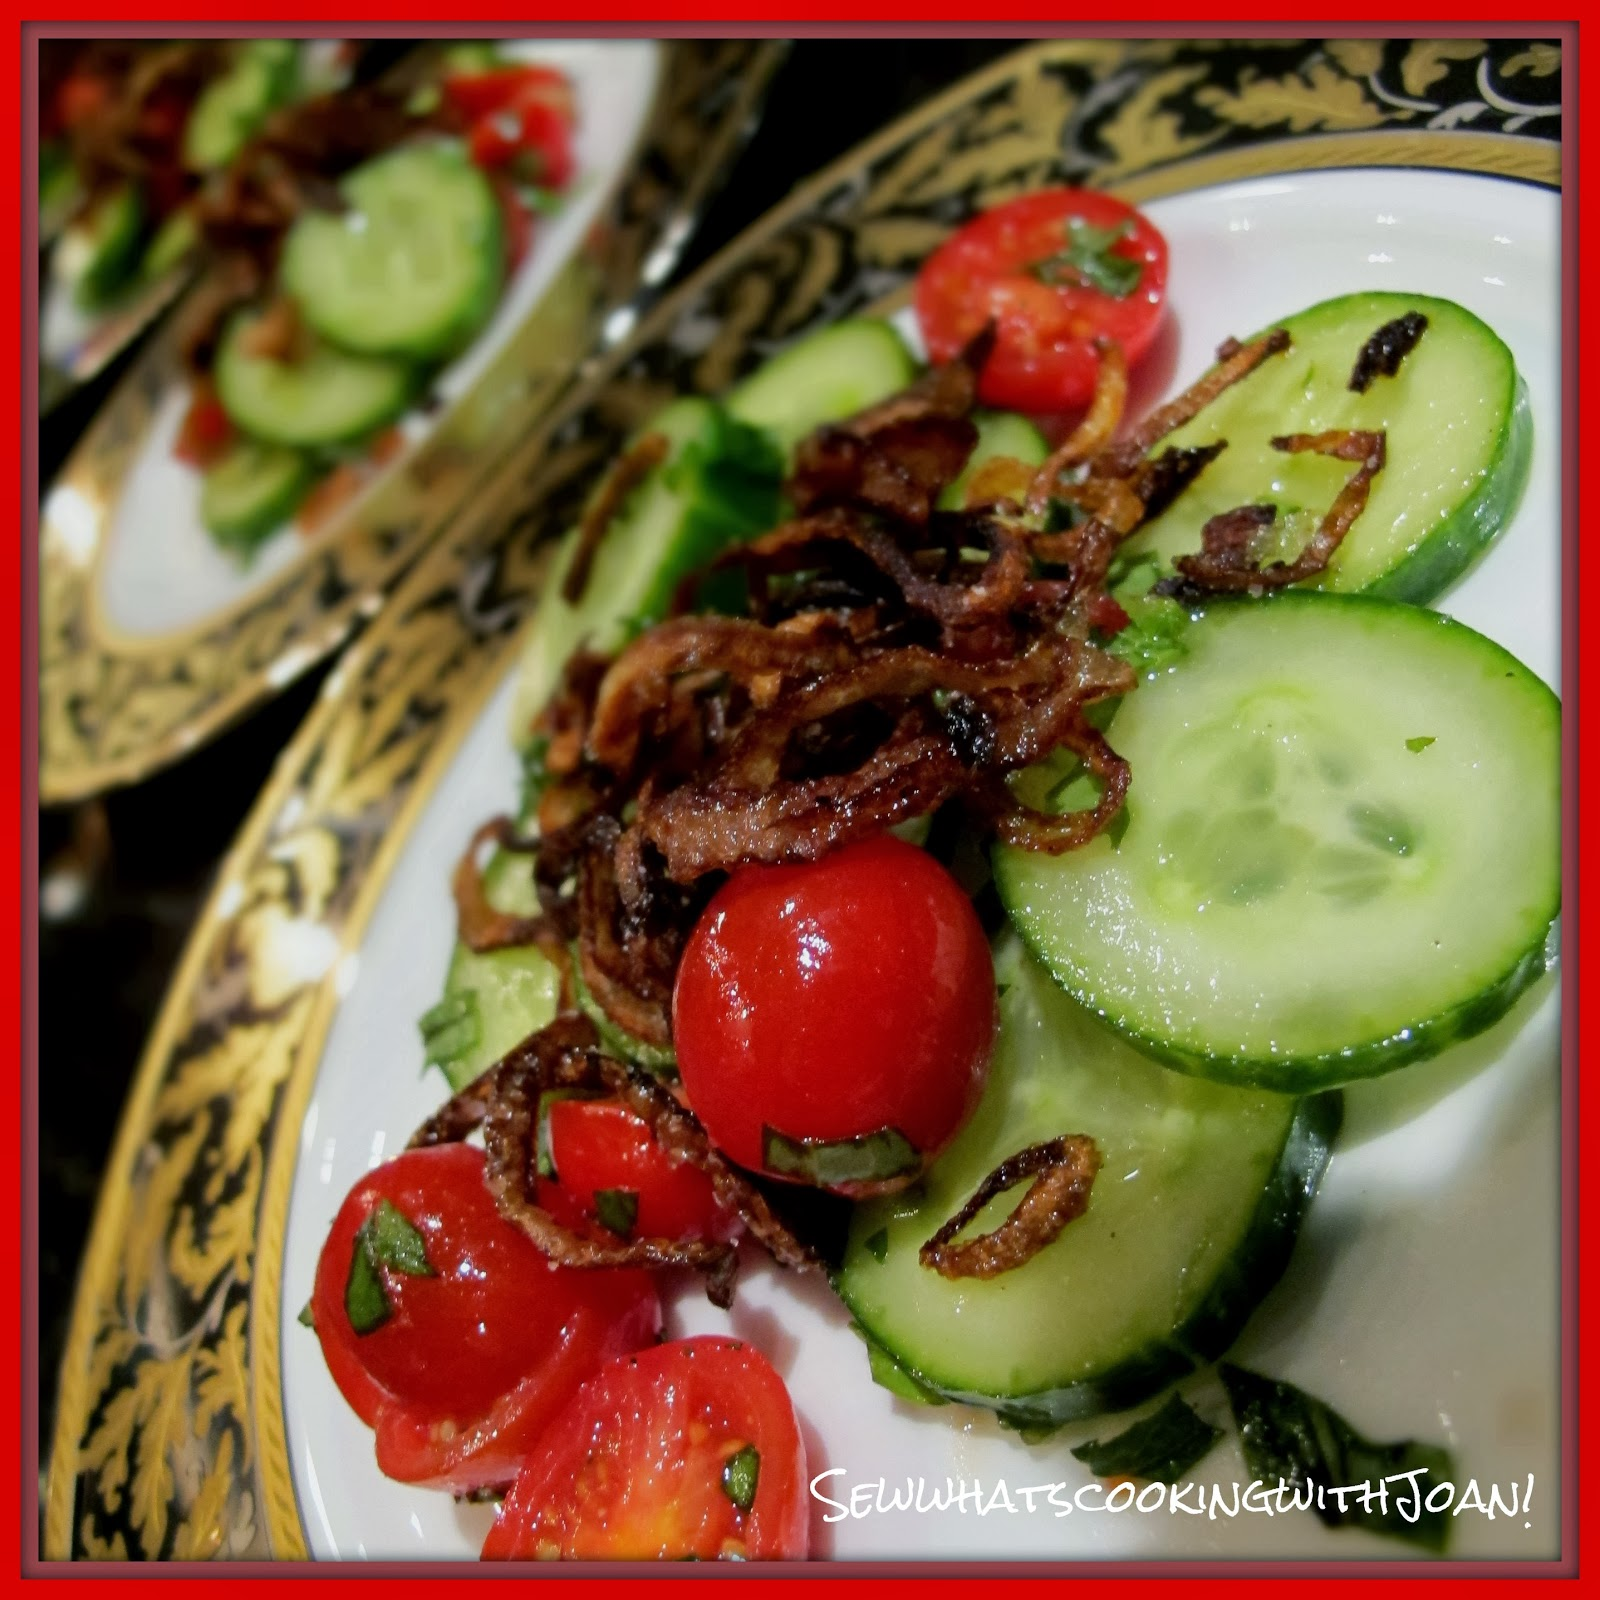 ... what's cooking with Joan!: Cucumber salad with caramelized shallots